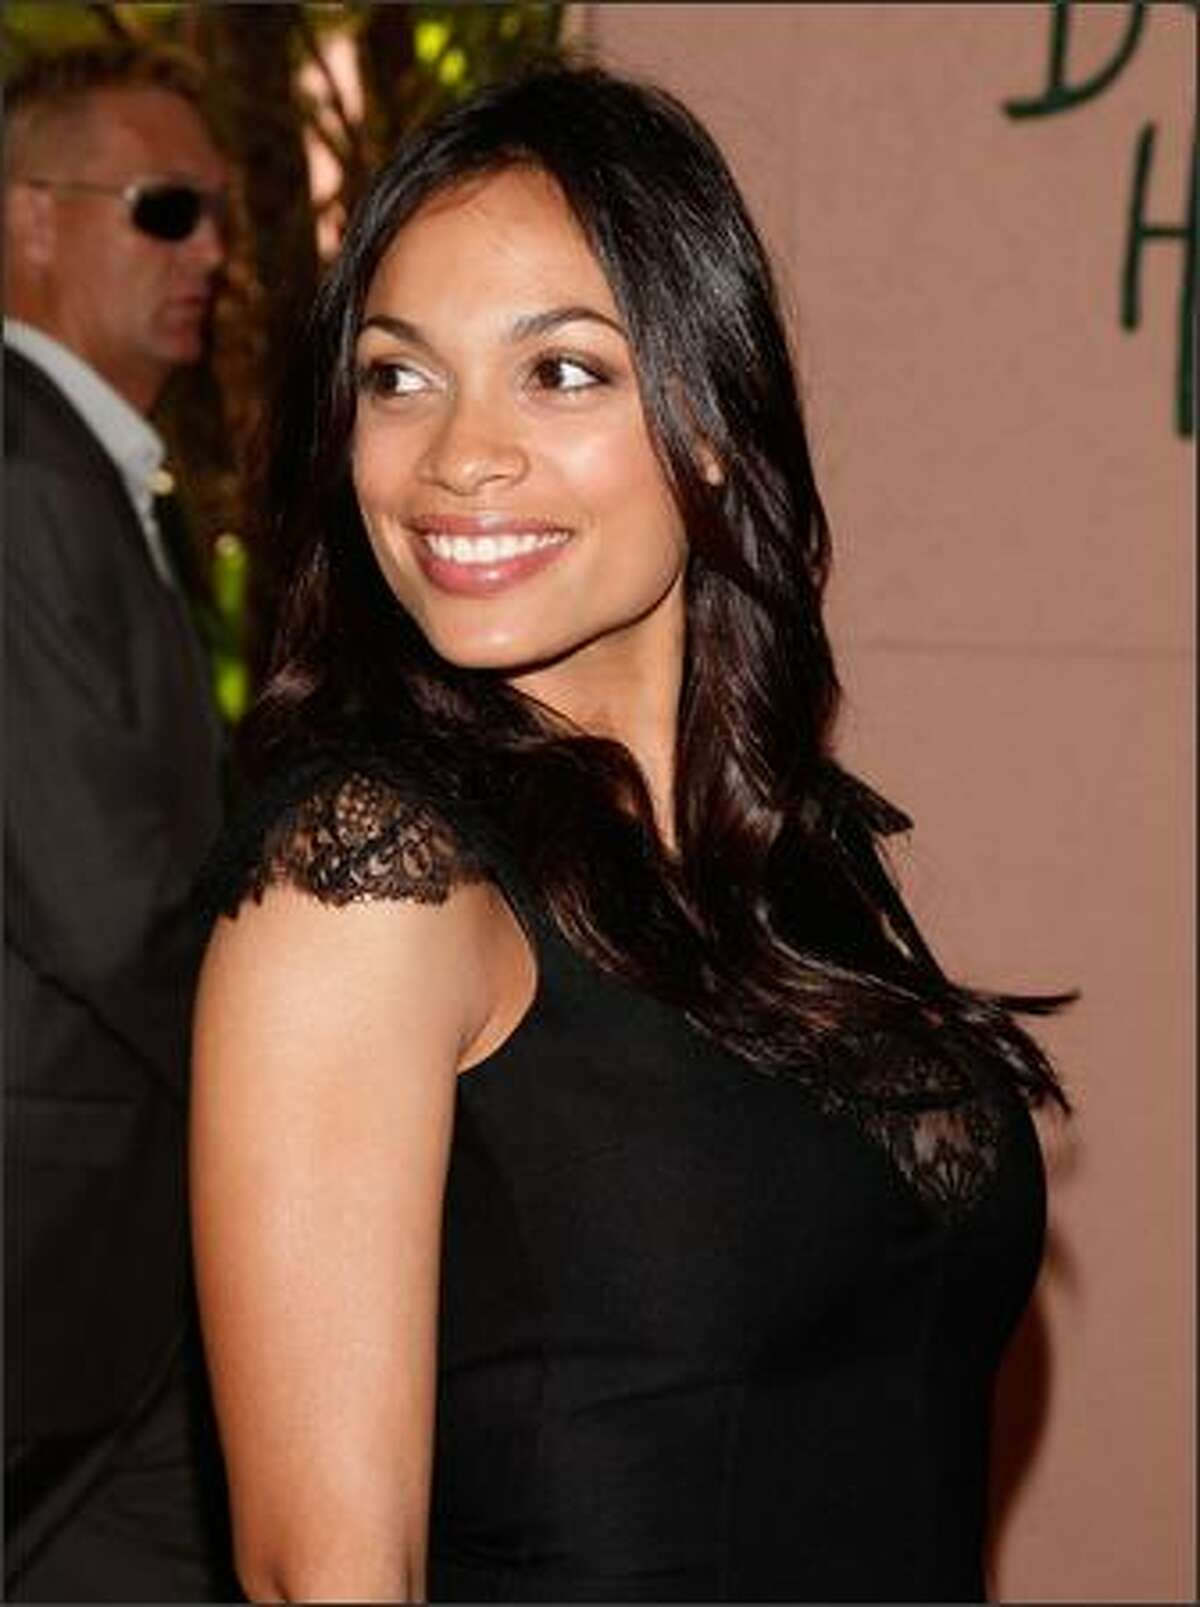 Actress Rosario Dawson arrives at the Hollywood Foreign Press Association's annual summer luncheon held at the Beverly Hills Hotel on Wednesday in Beverly Hills, Calif.